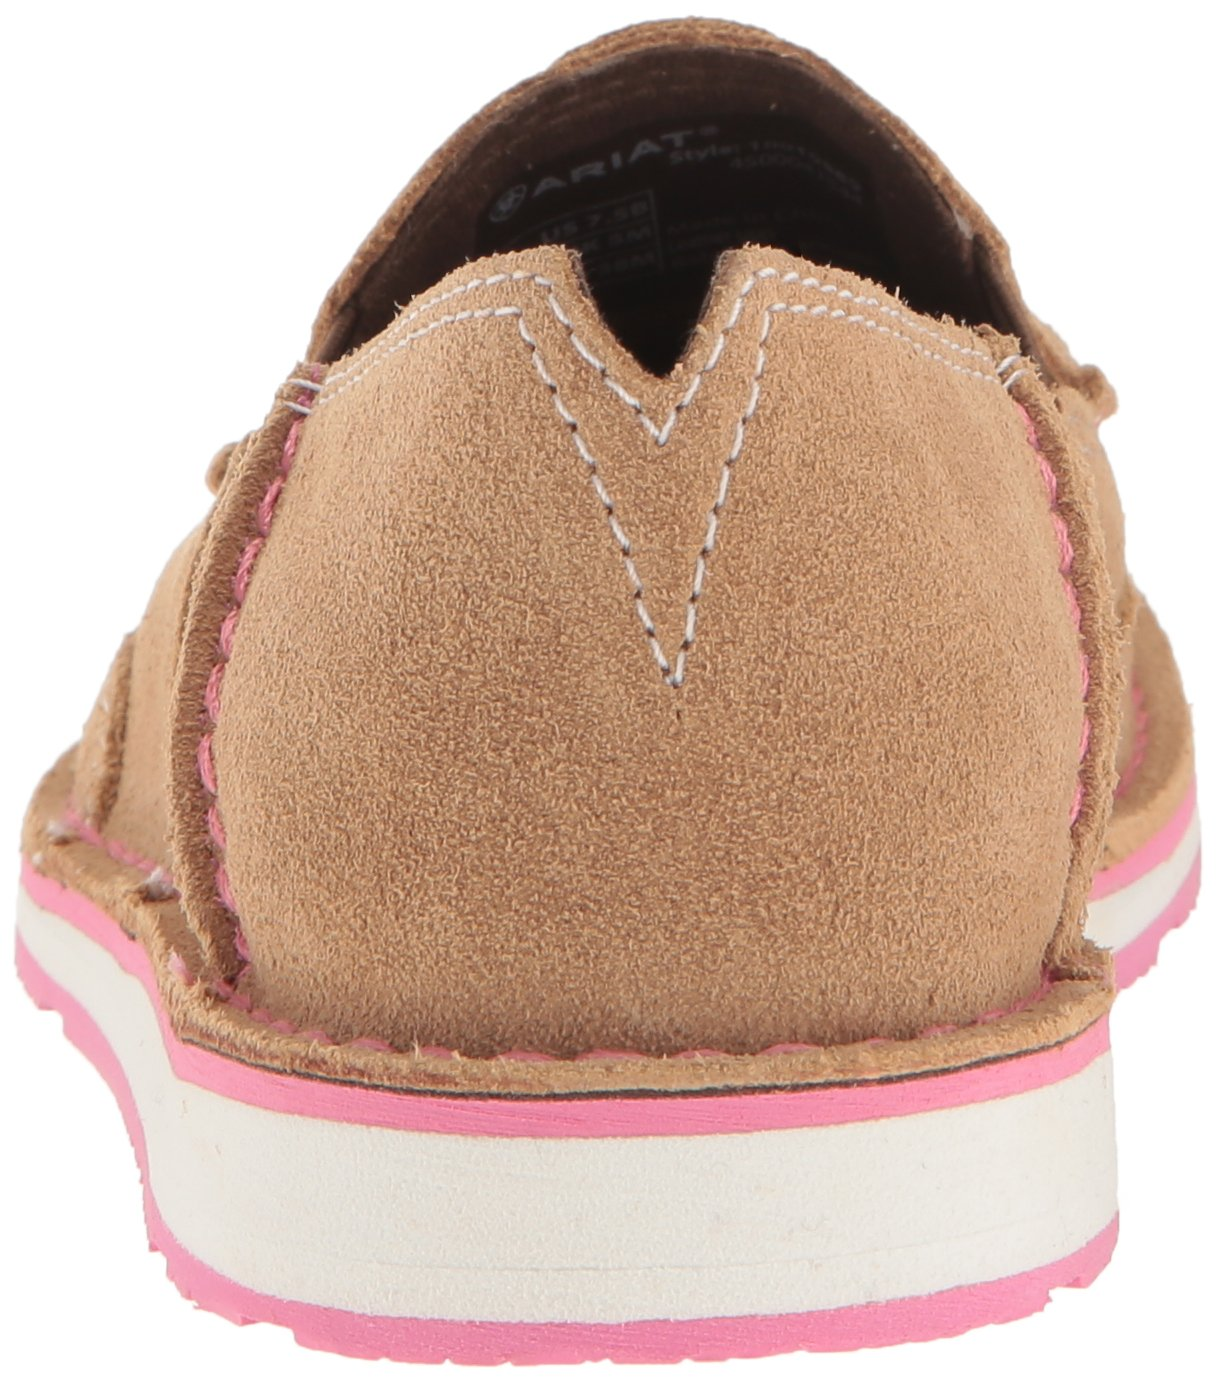 Ariat Women's Cruiser Slip-on Shoe B01L91L1JC 7.5 B(M) US|Dirty Taupe Suede